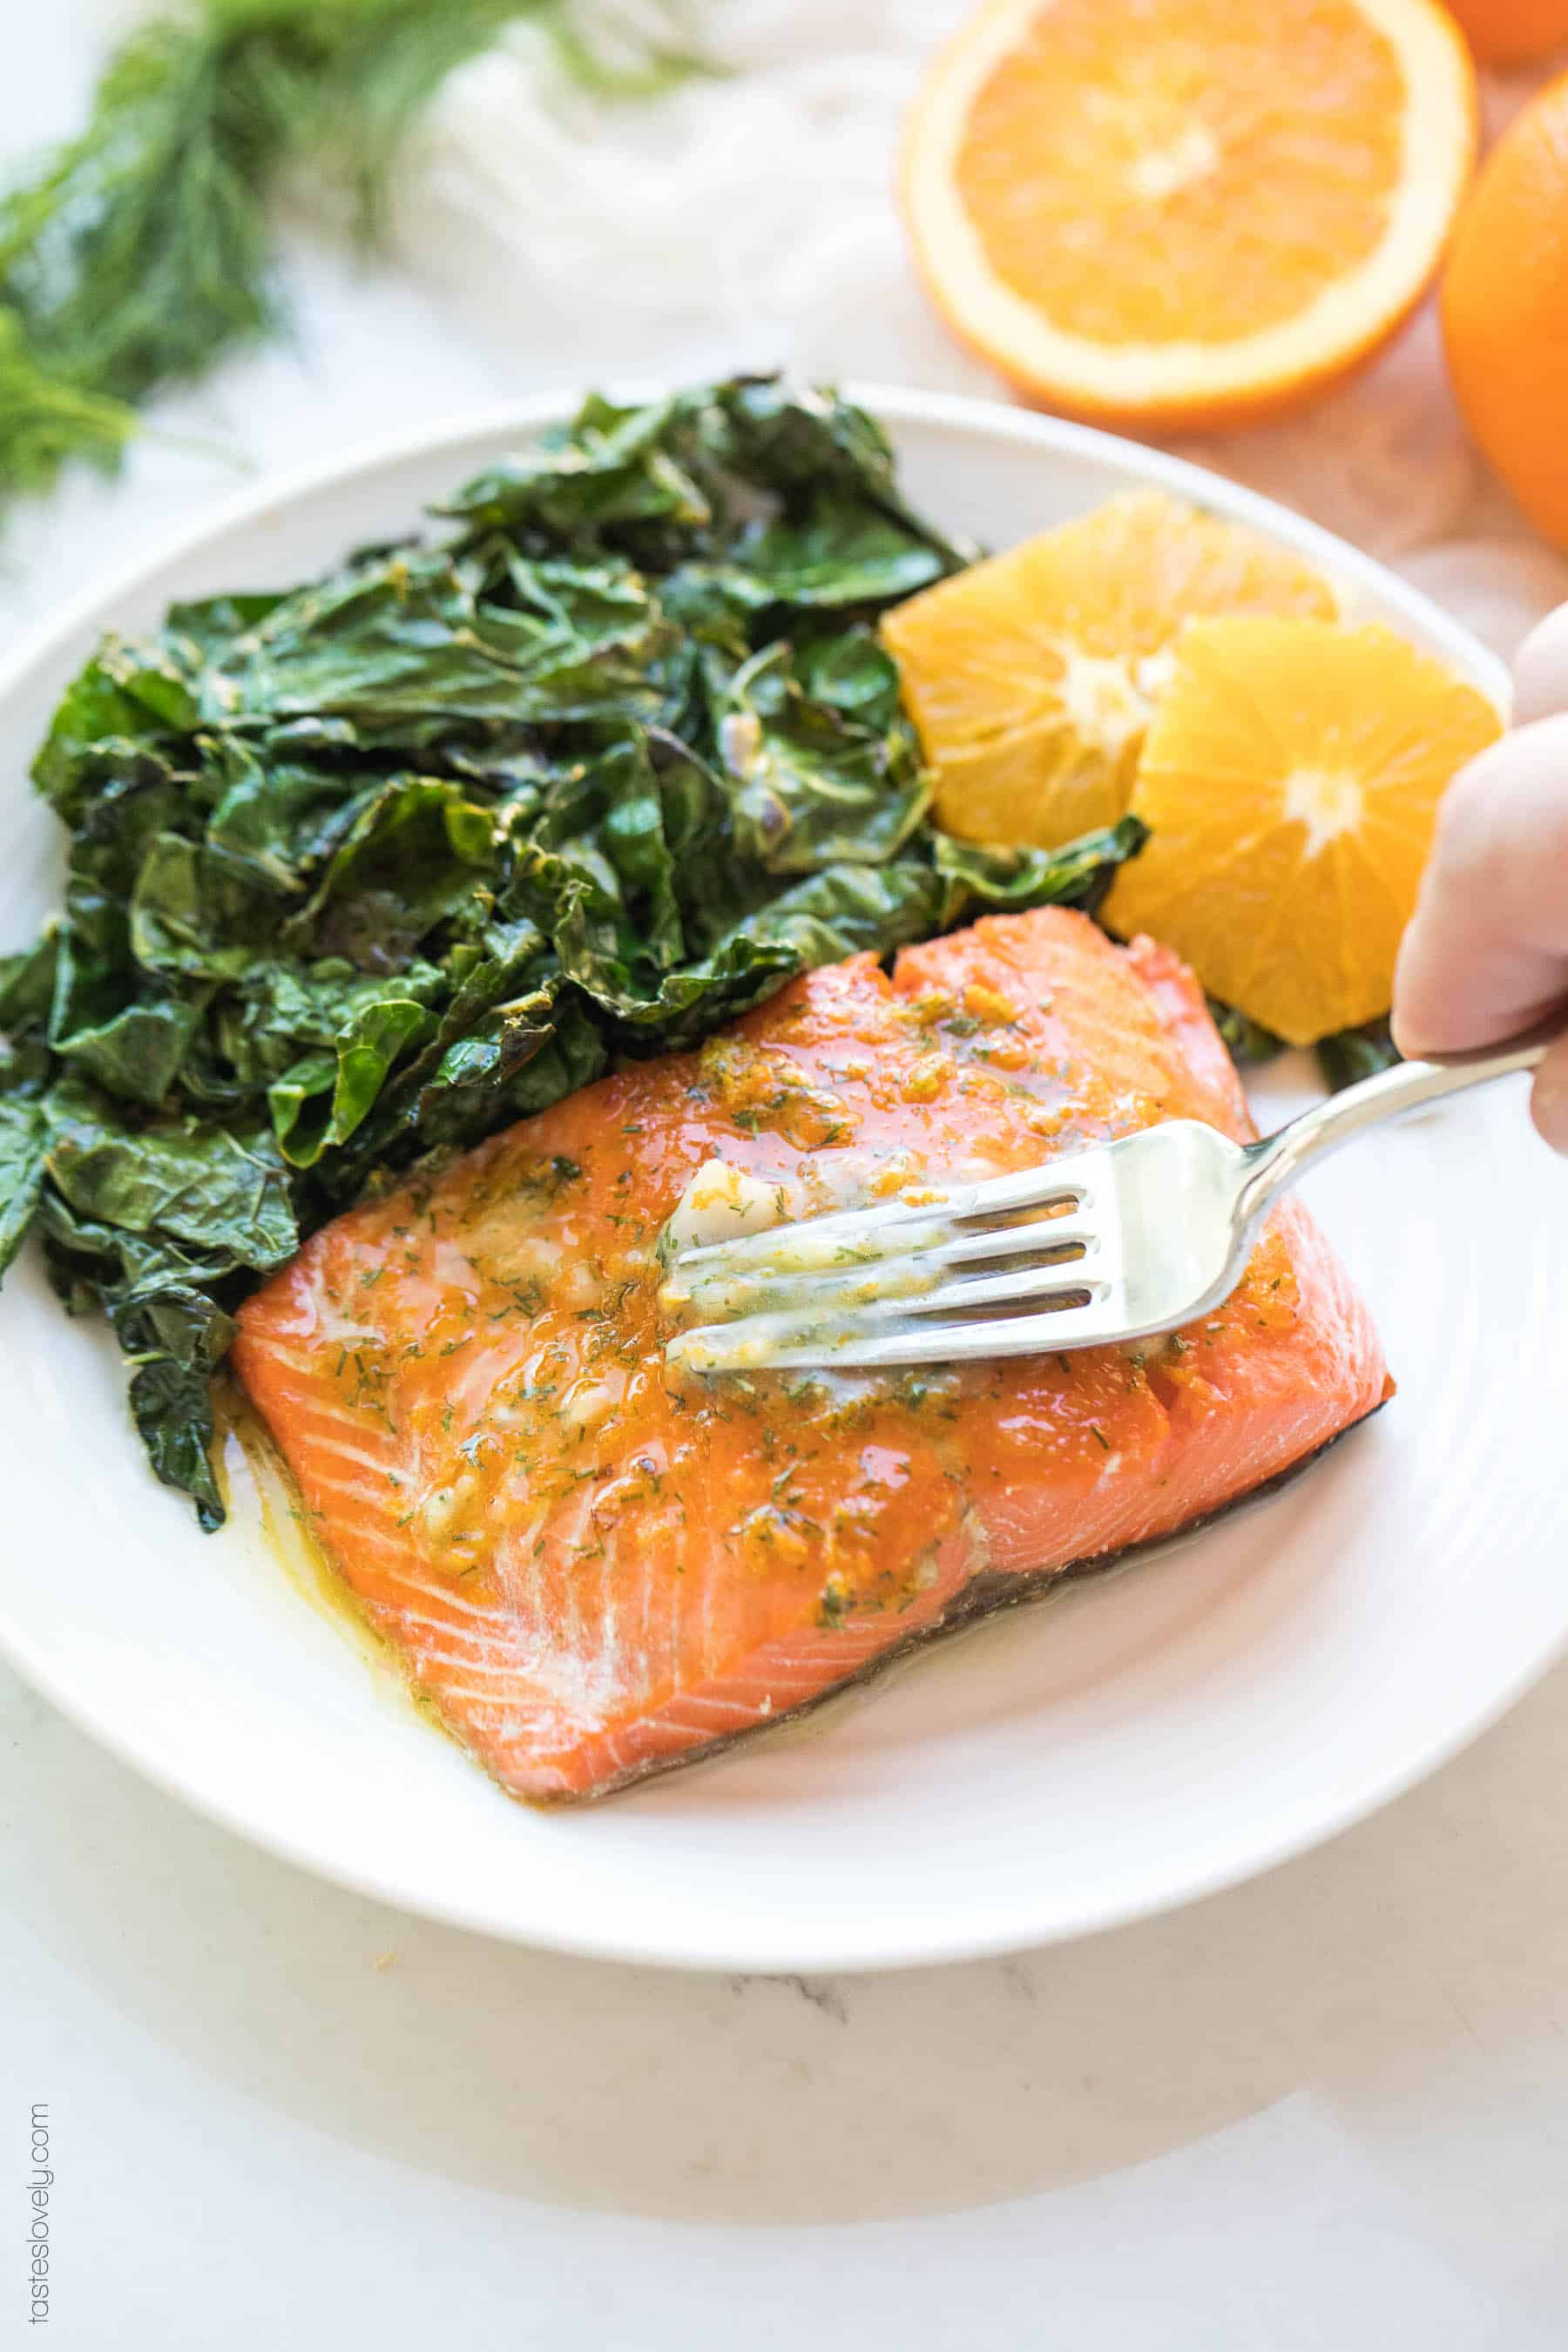 Salmon with kale and oranges